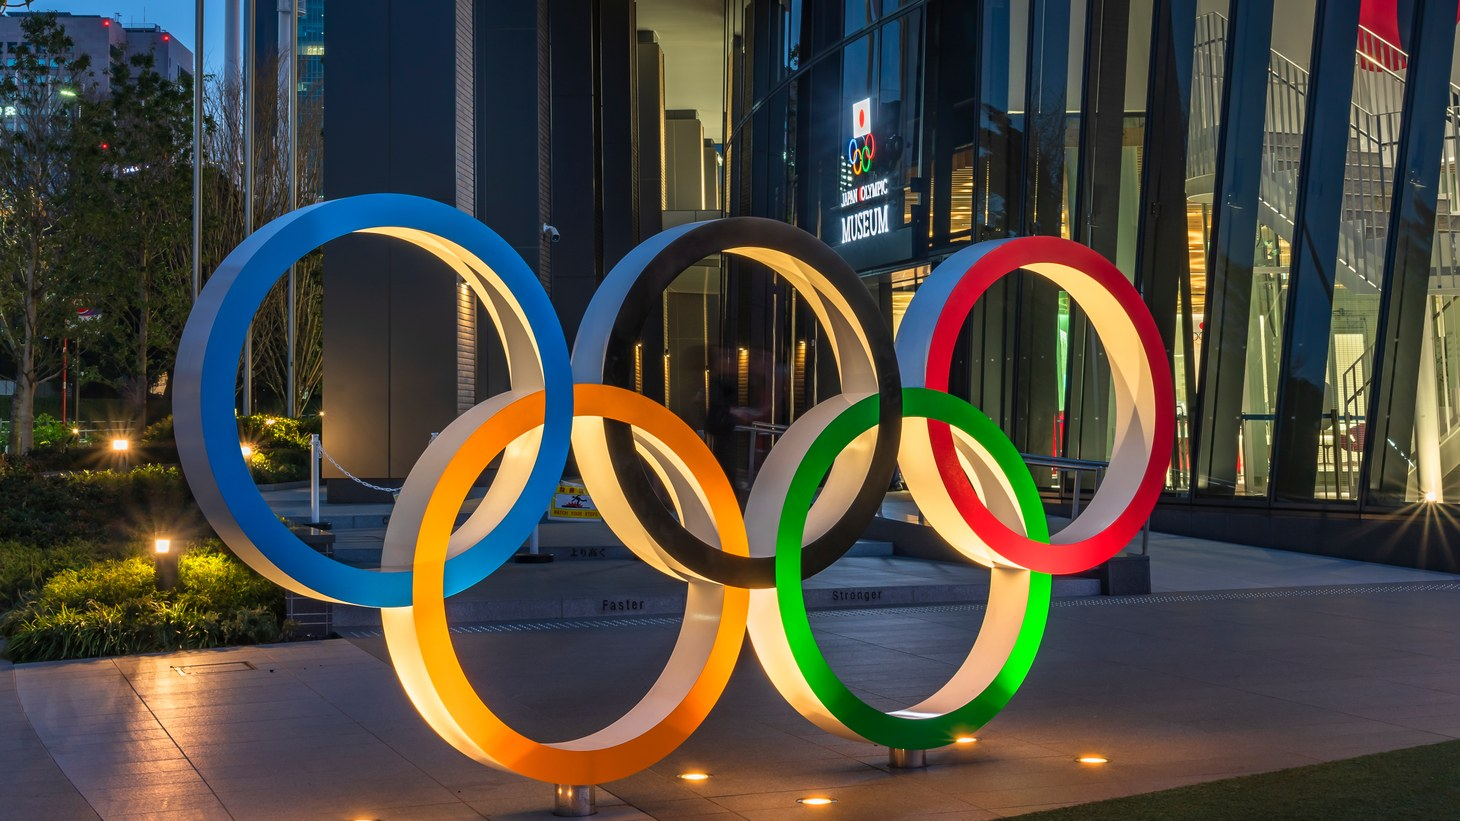 The Olympic rings monument sits outside the entrance of the Japan Olympic Museum in Tokyo, Japan, May 5, 2021. The International Olympic Committee is requiring athletes to sign liability waivers and take on all coronavirus-related risks.